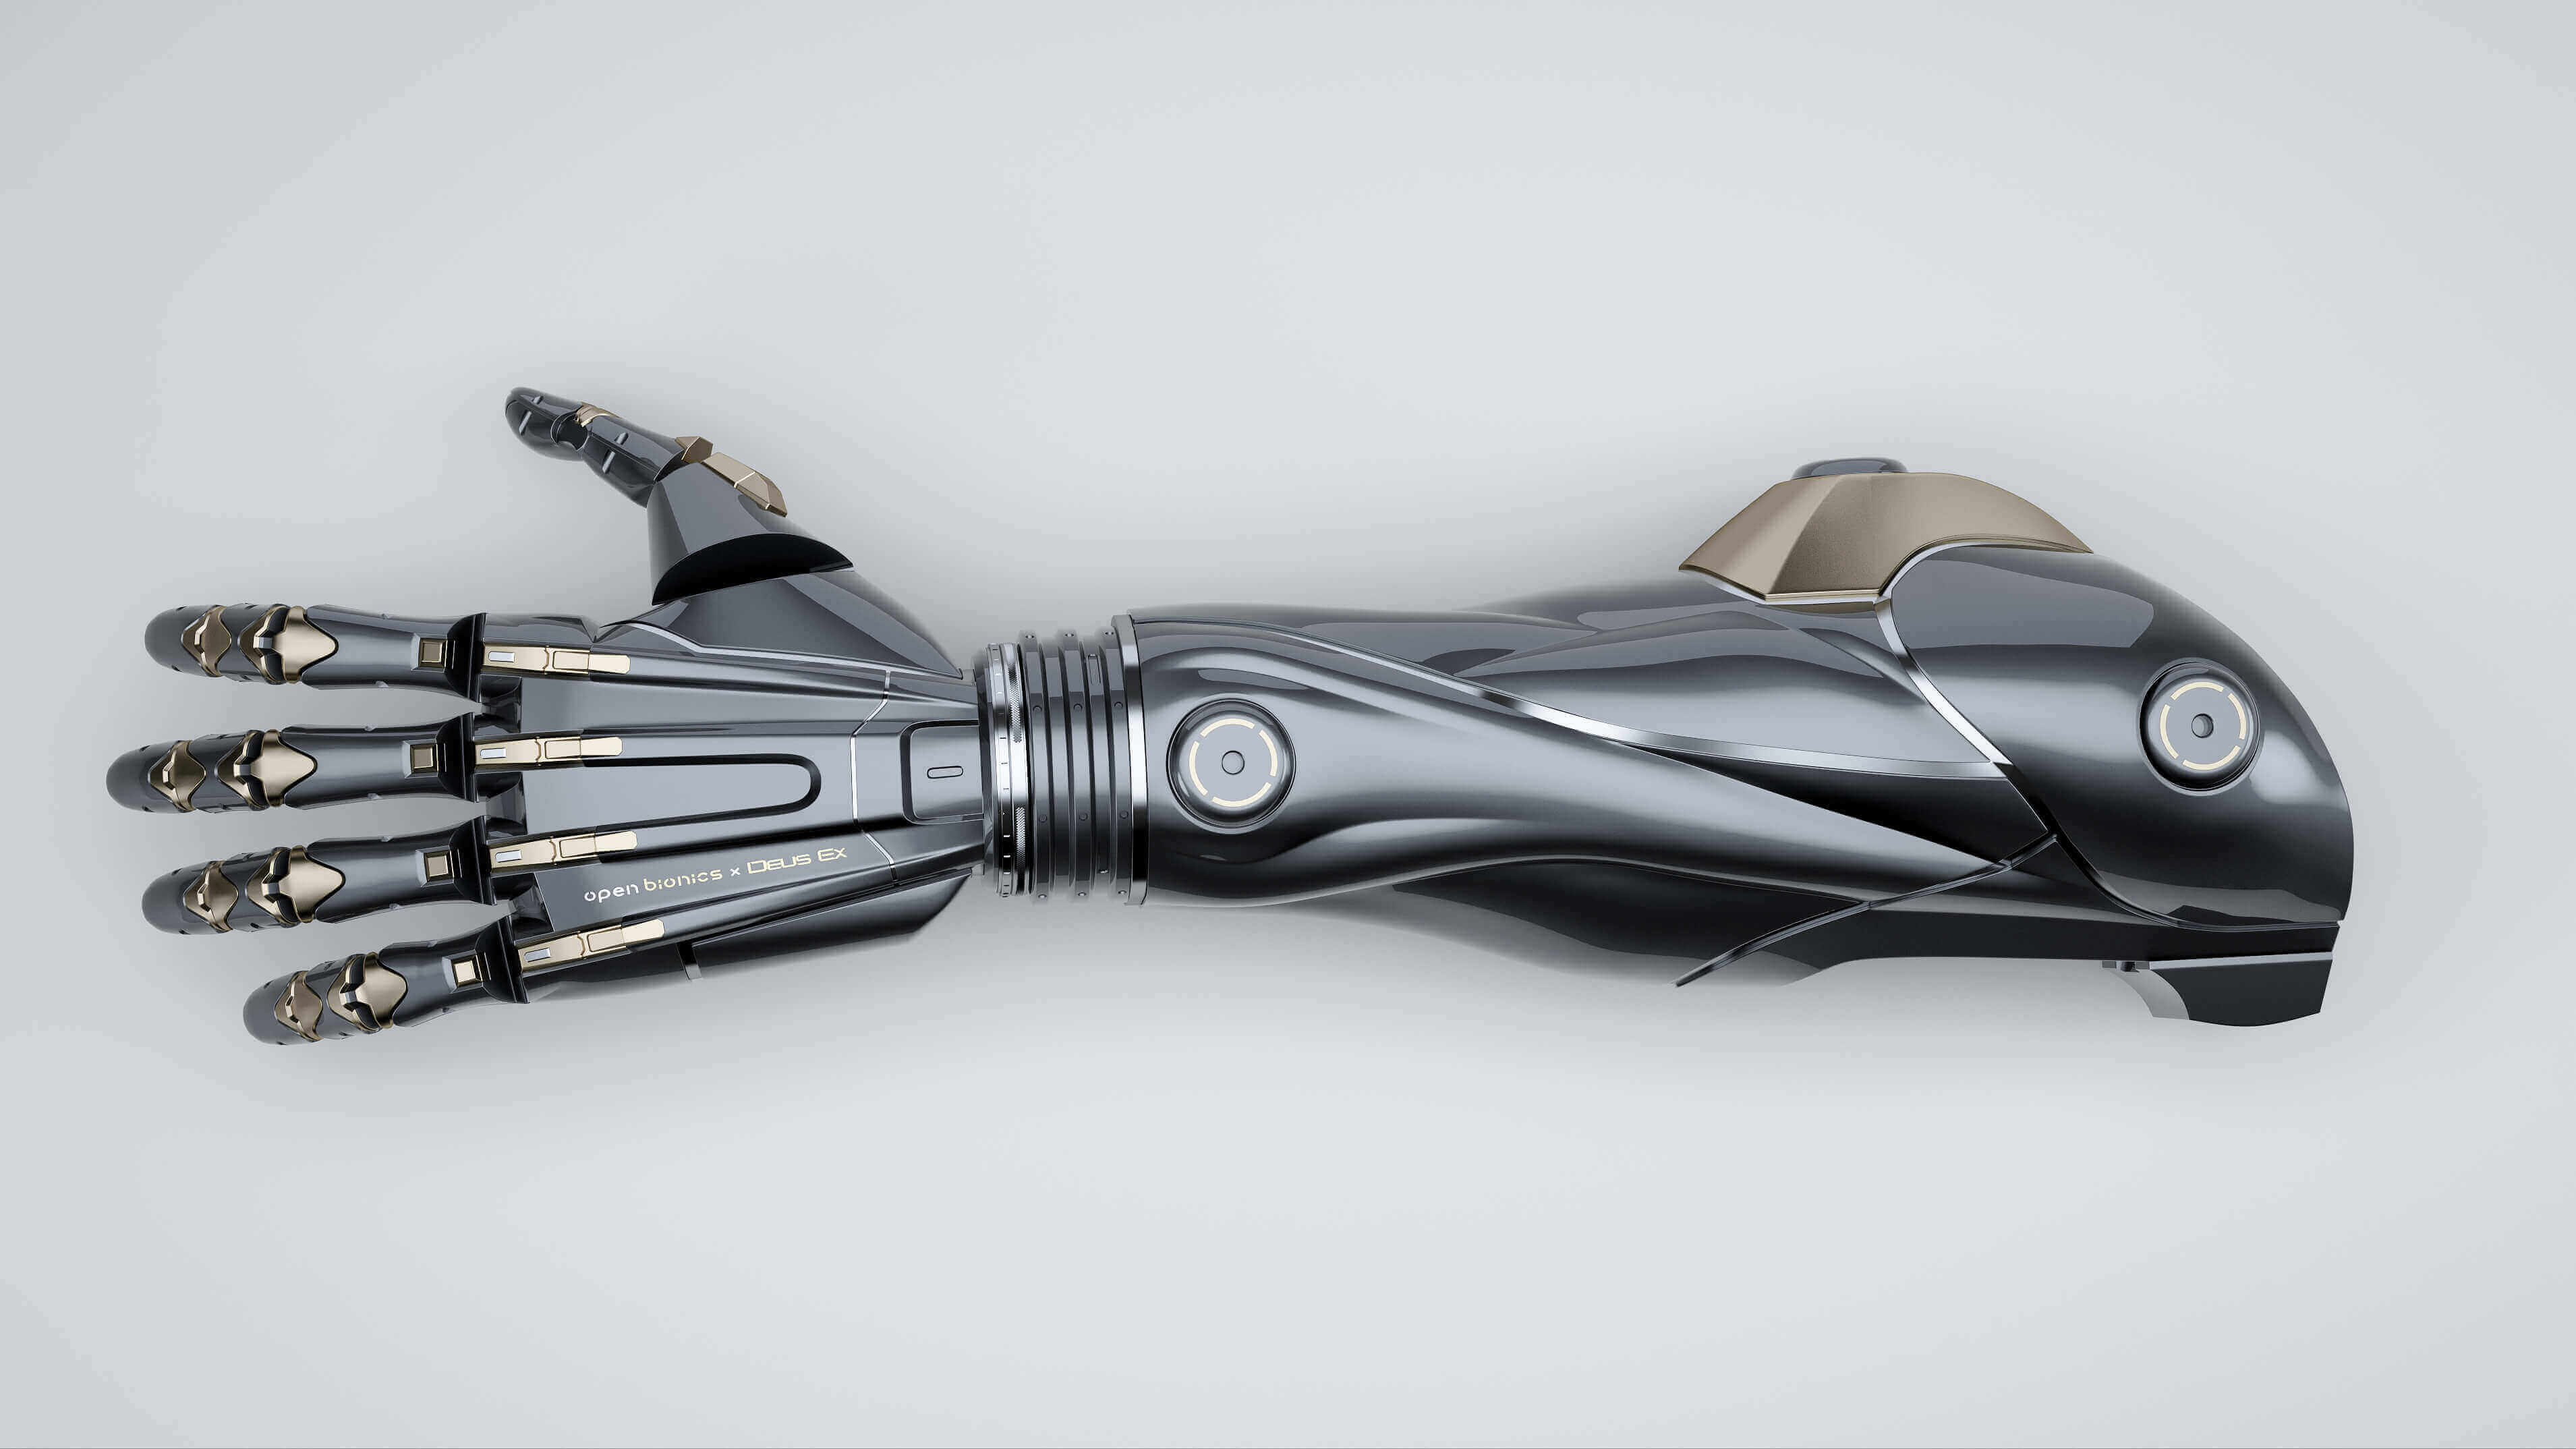 Open Bionics making 3D Printed Deus Ex Prosthetics | All3DP